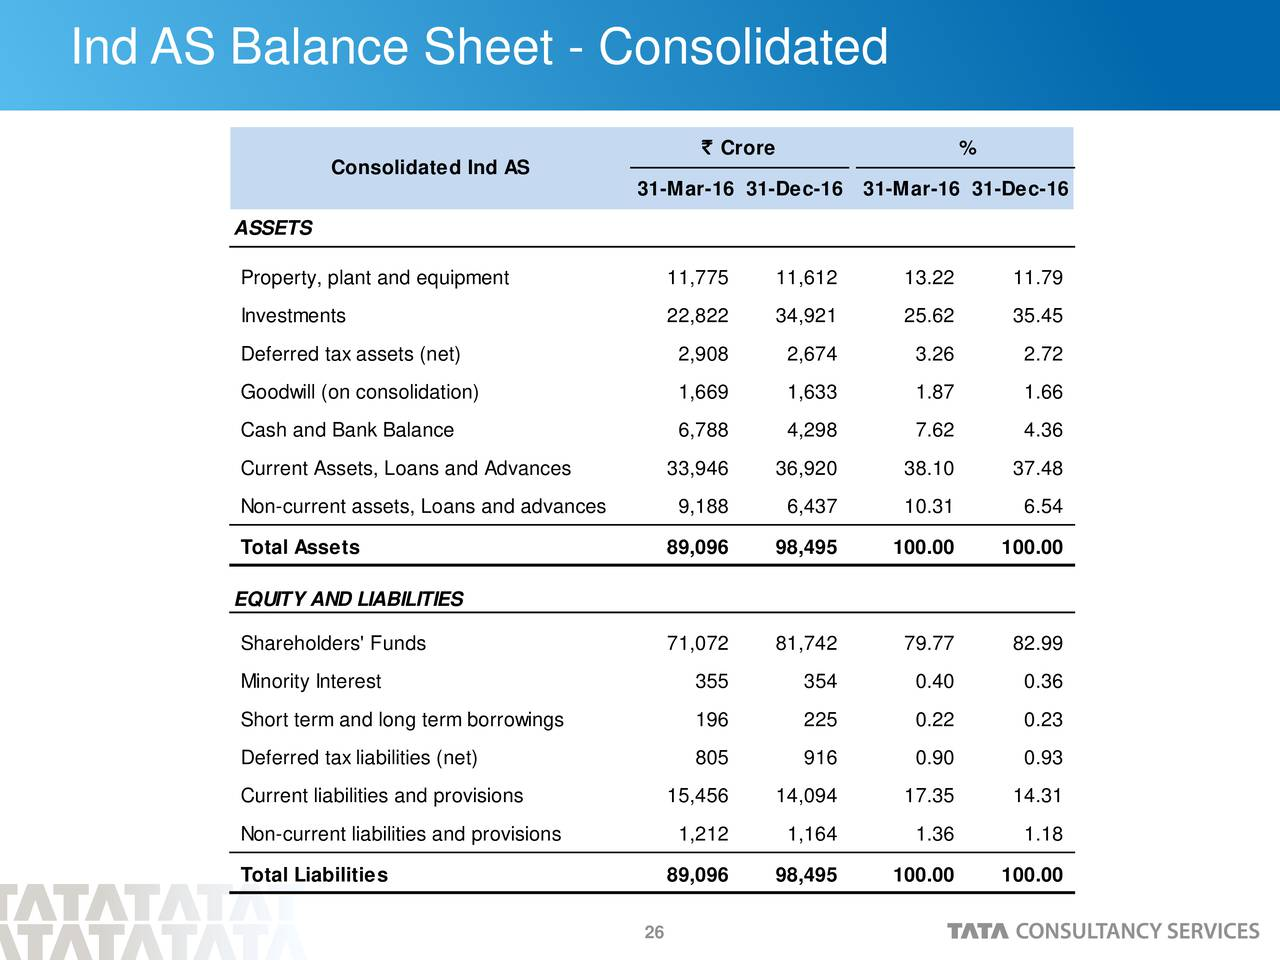 analysis of balance sheet of tata consultancy services Tata consultancy services limited shares outstanding analysis of tata consultancy shares outstanding, outstanding shares that are stated on company balance sheet are used when calculating many important valuation and performance indicators including return on equity, market cap, eps and many others.